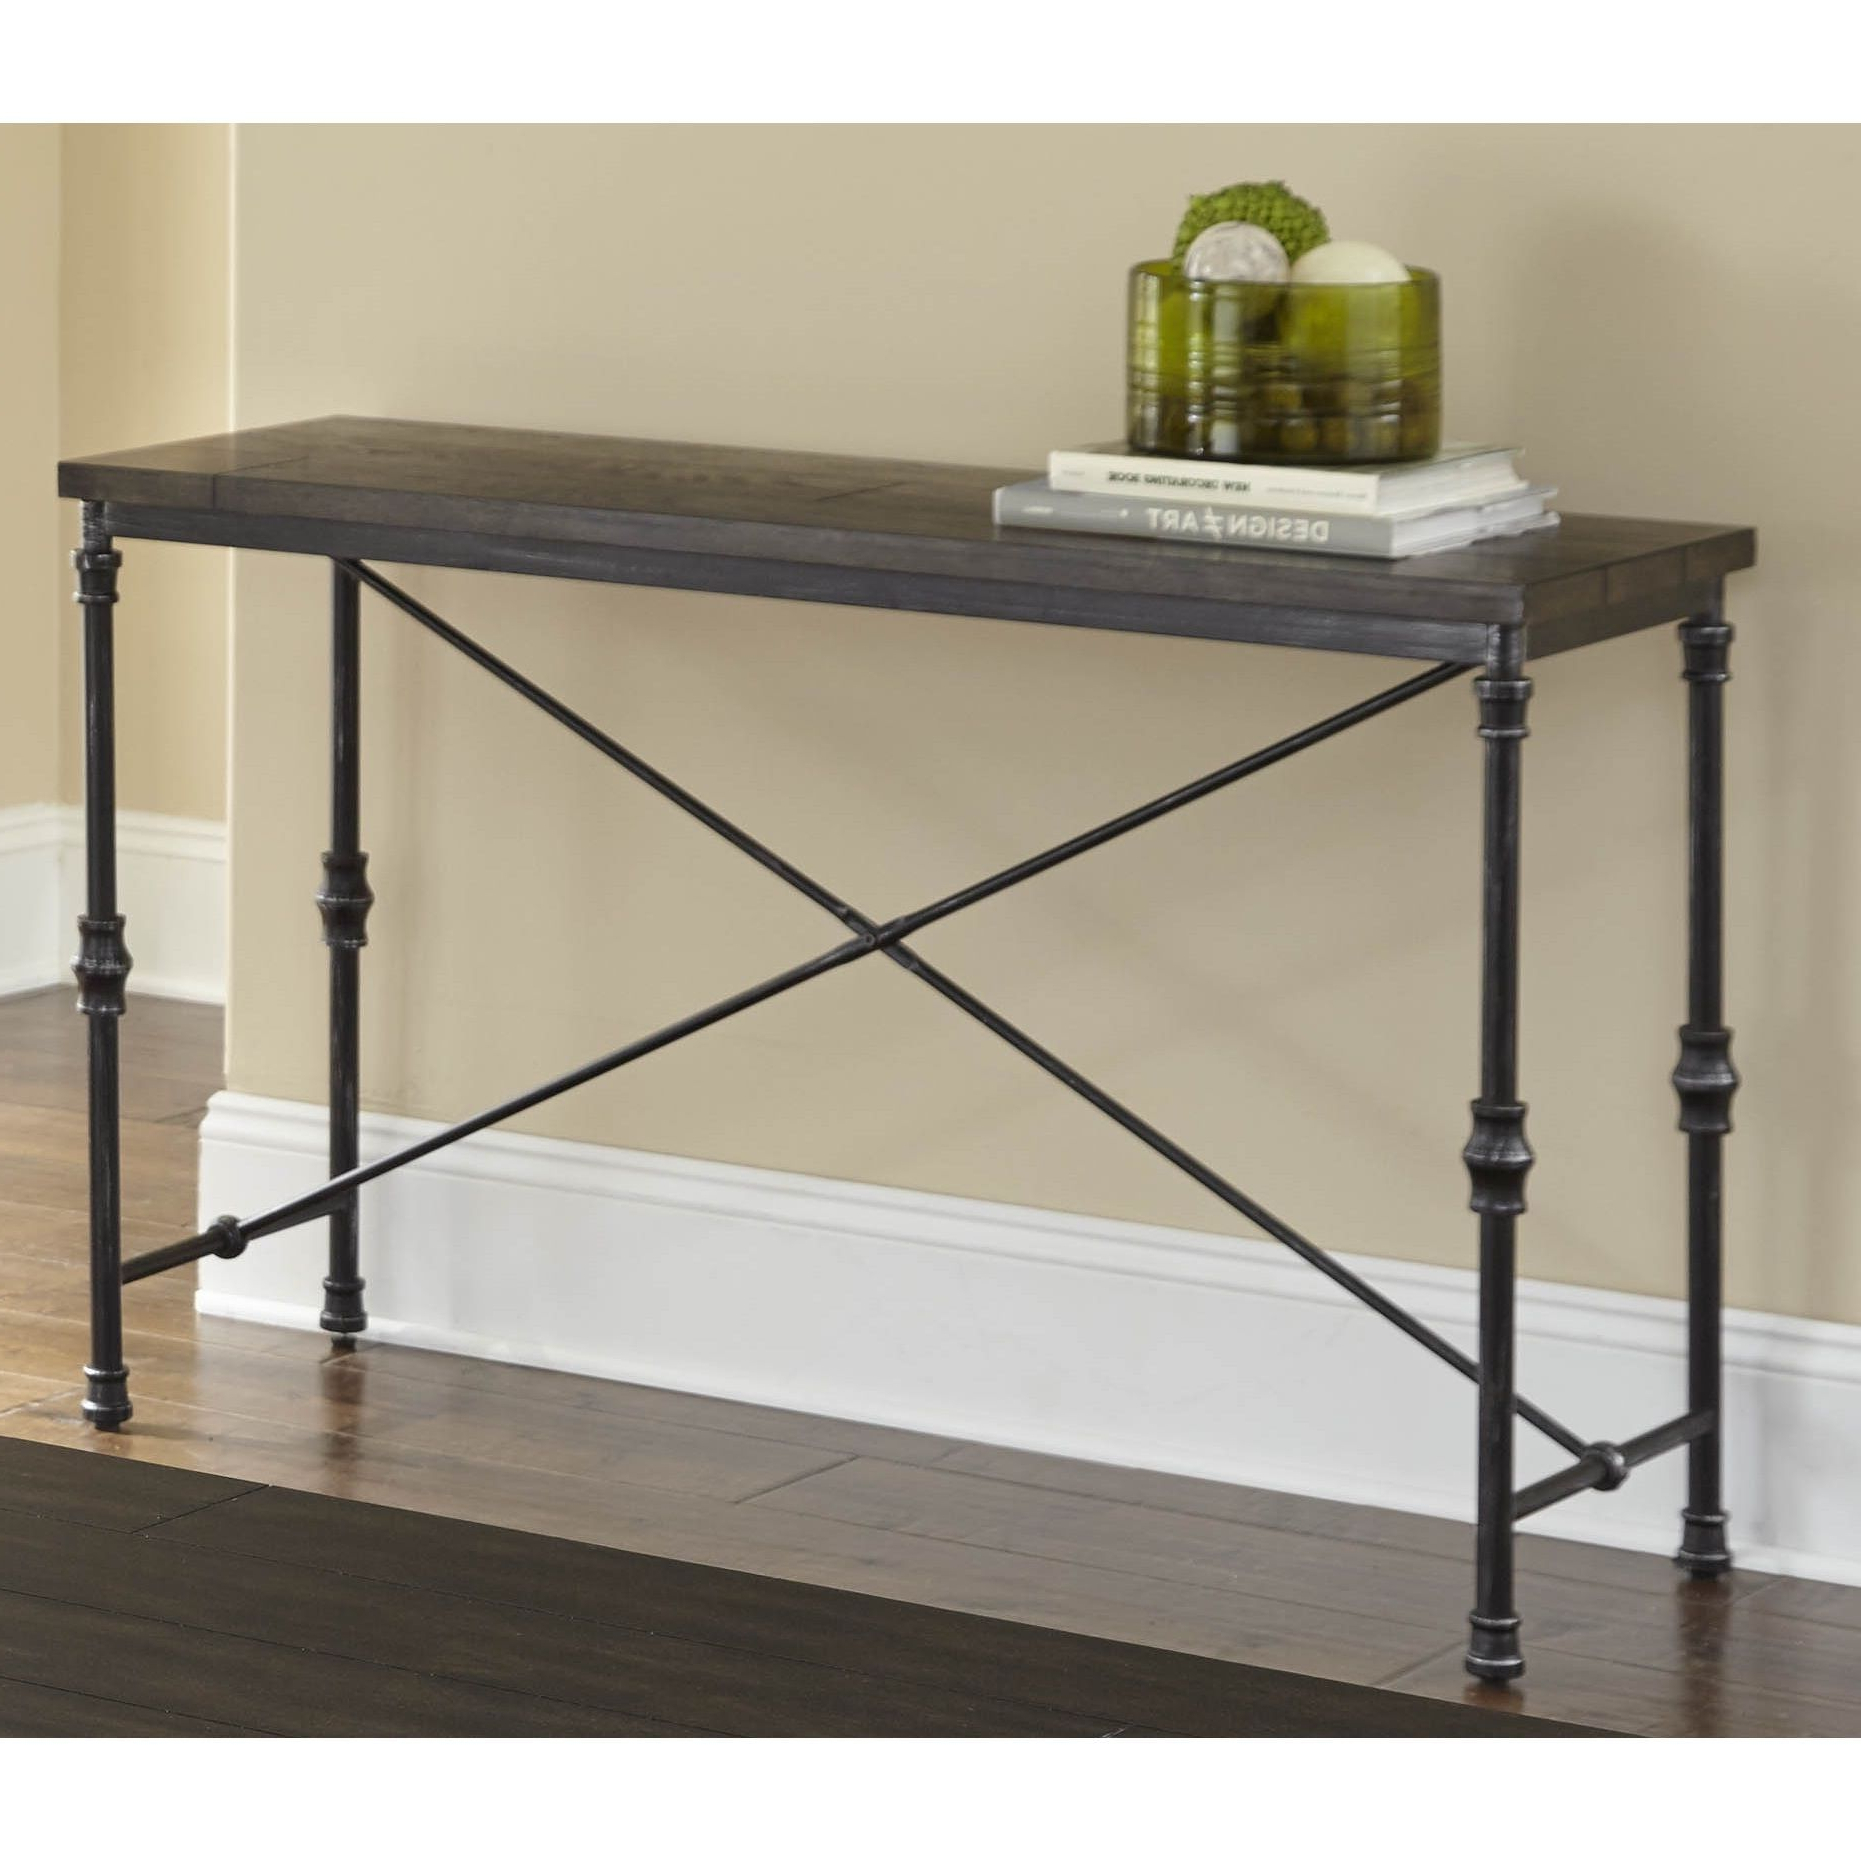 Greyson Living Loring Sofa Table, Grey | Home Decorating | Pinterest For Yukon Grey Console Tables (View 7 of 20)